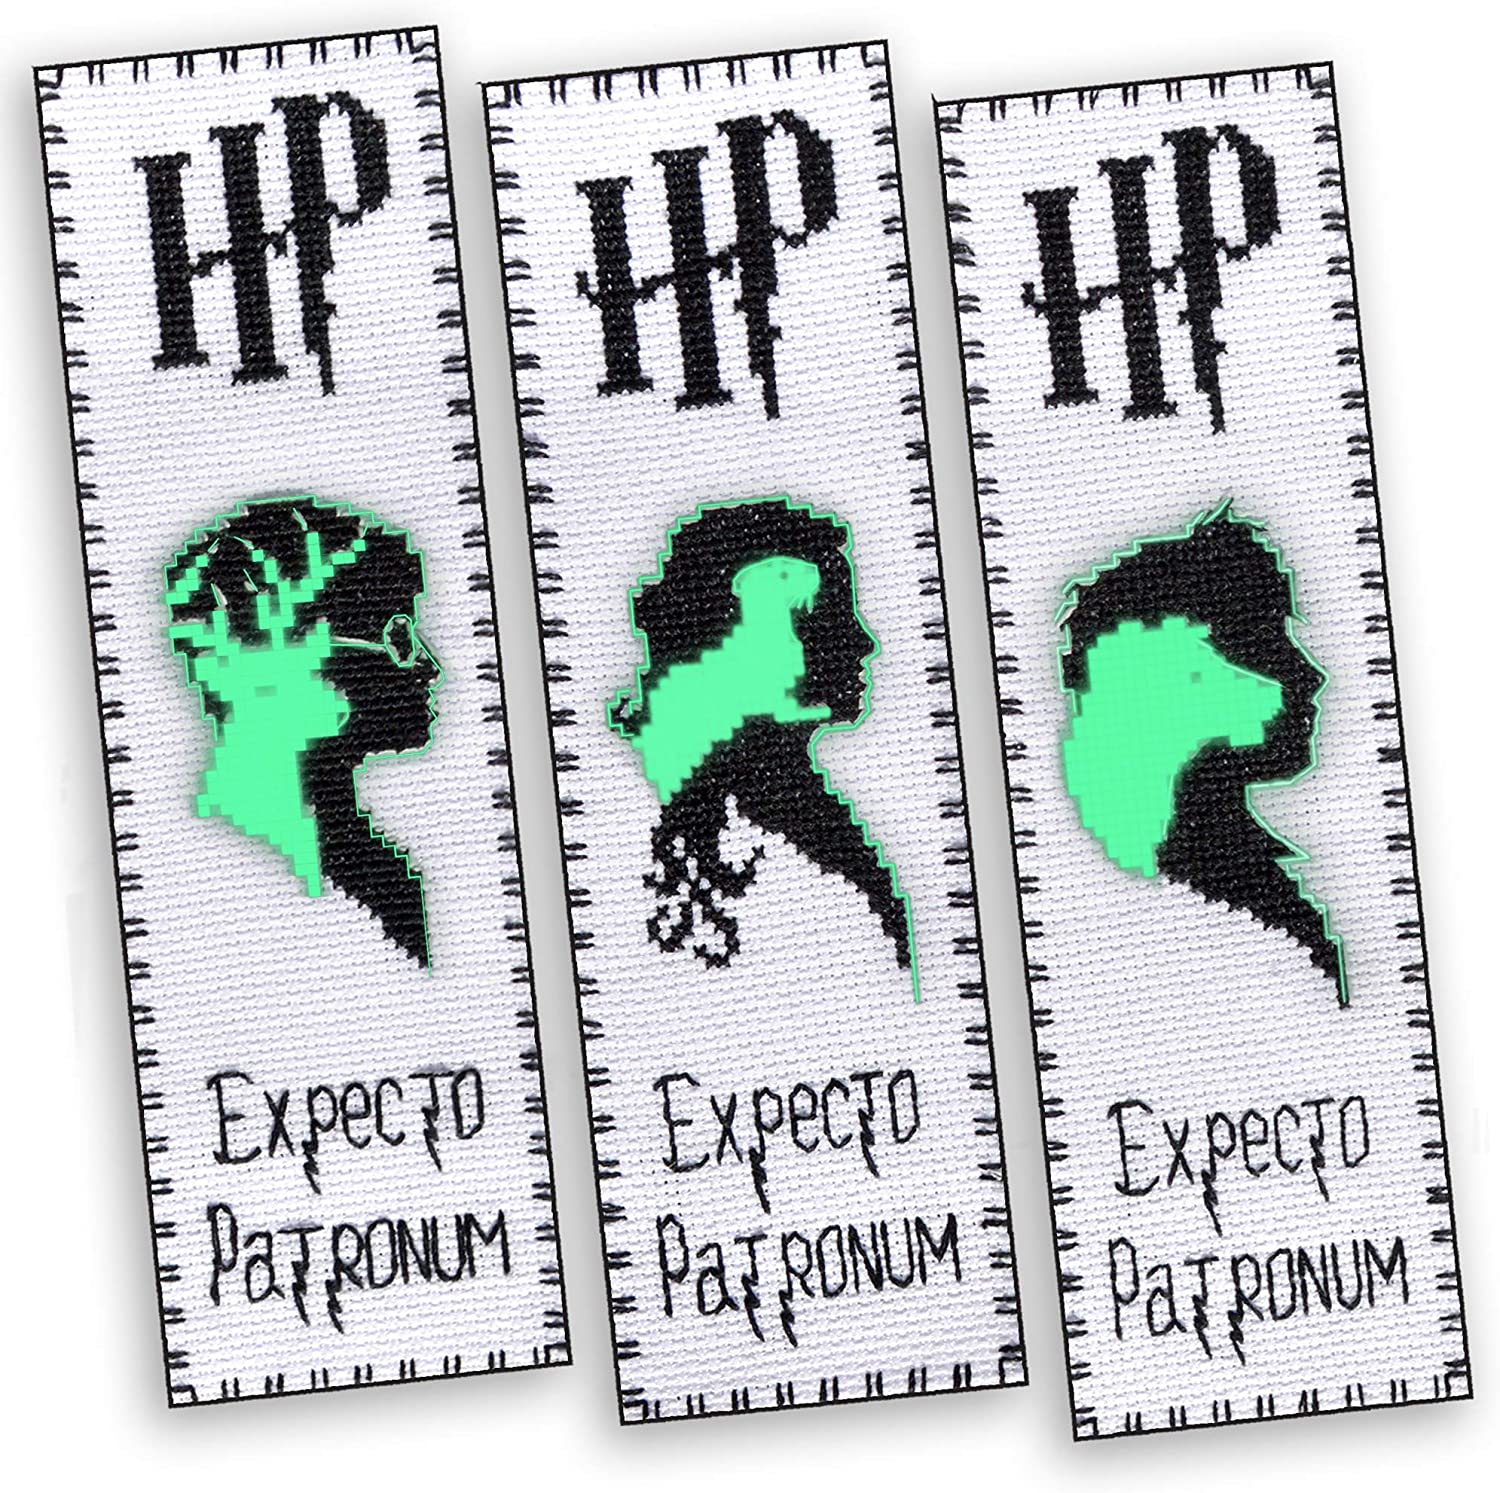 Embroidery Kits 'Patronuses' - Set of 3 DIY Counted Cross Stitch Luminous Bookmarks - Glow-in-The-Dark Gift for Kids and Teens